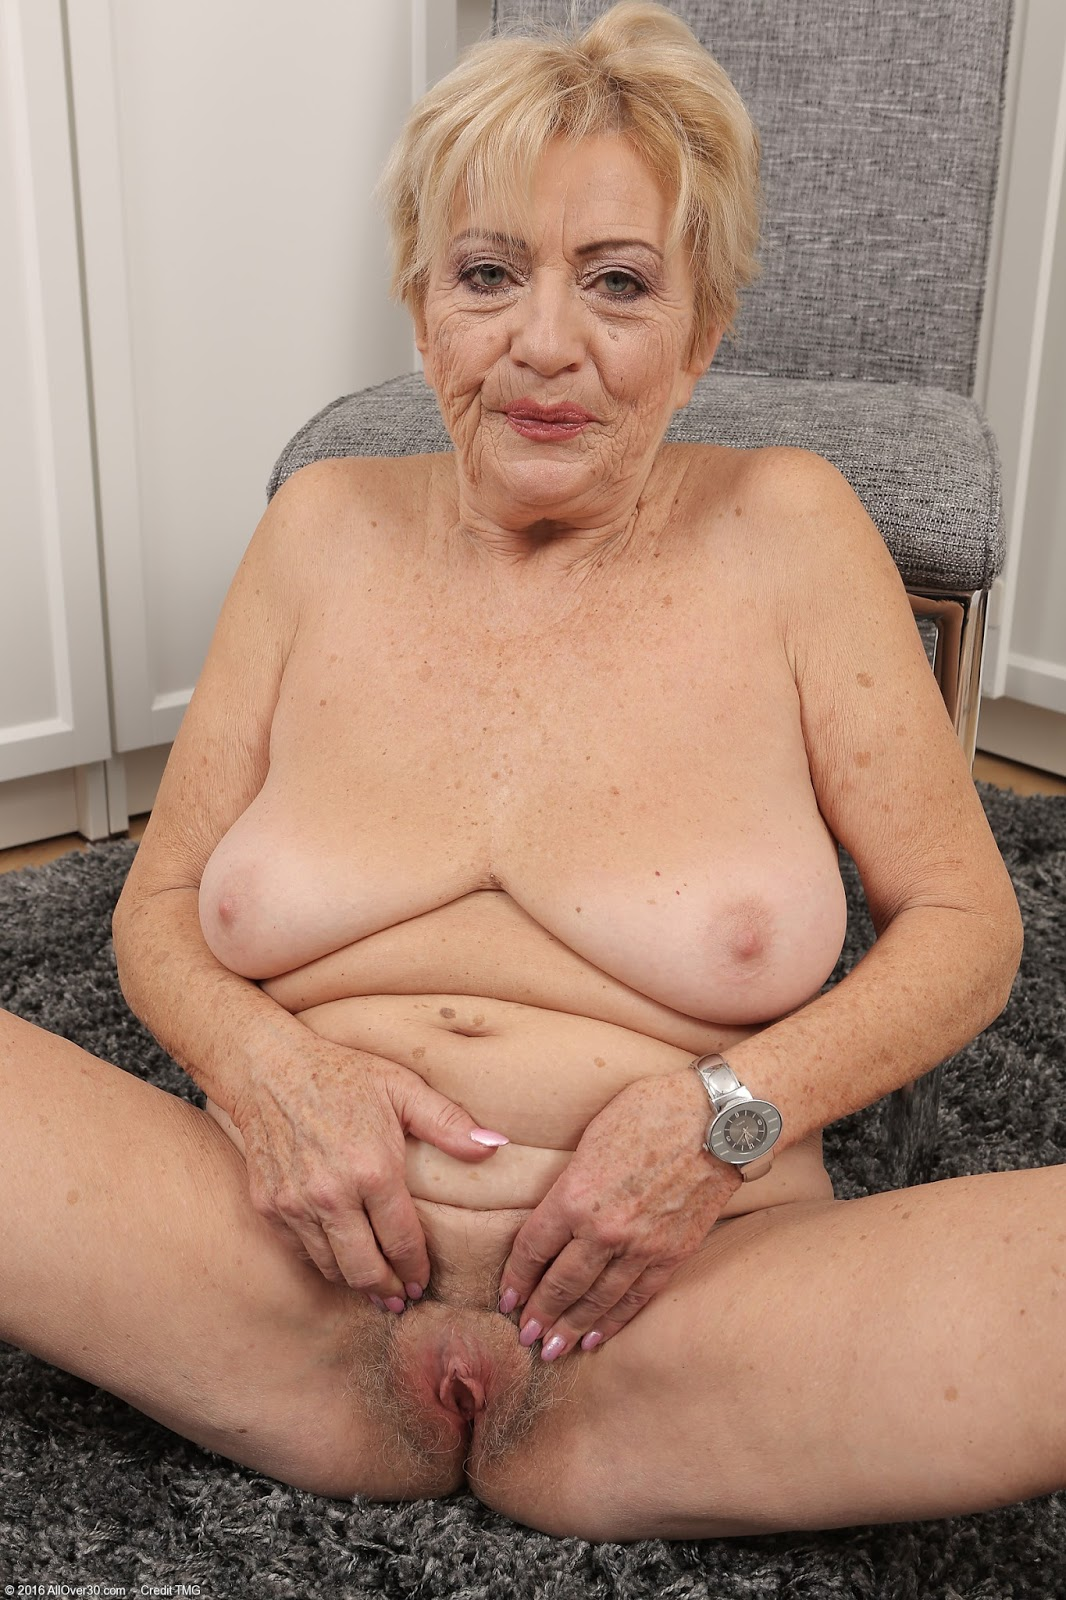 Archive Of Old Women Grannies Sets-7372